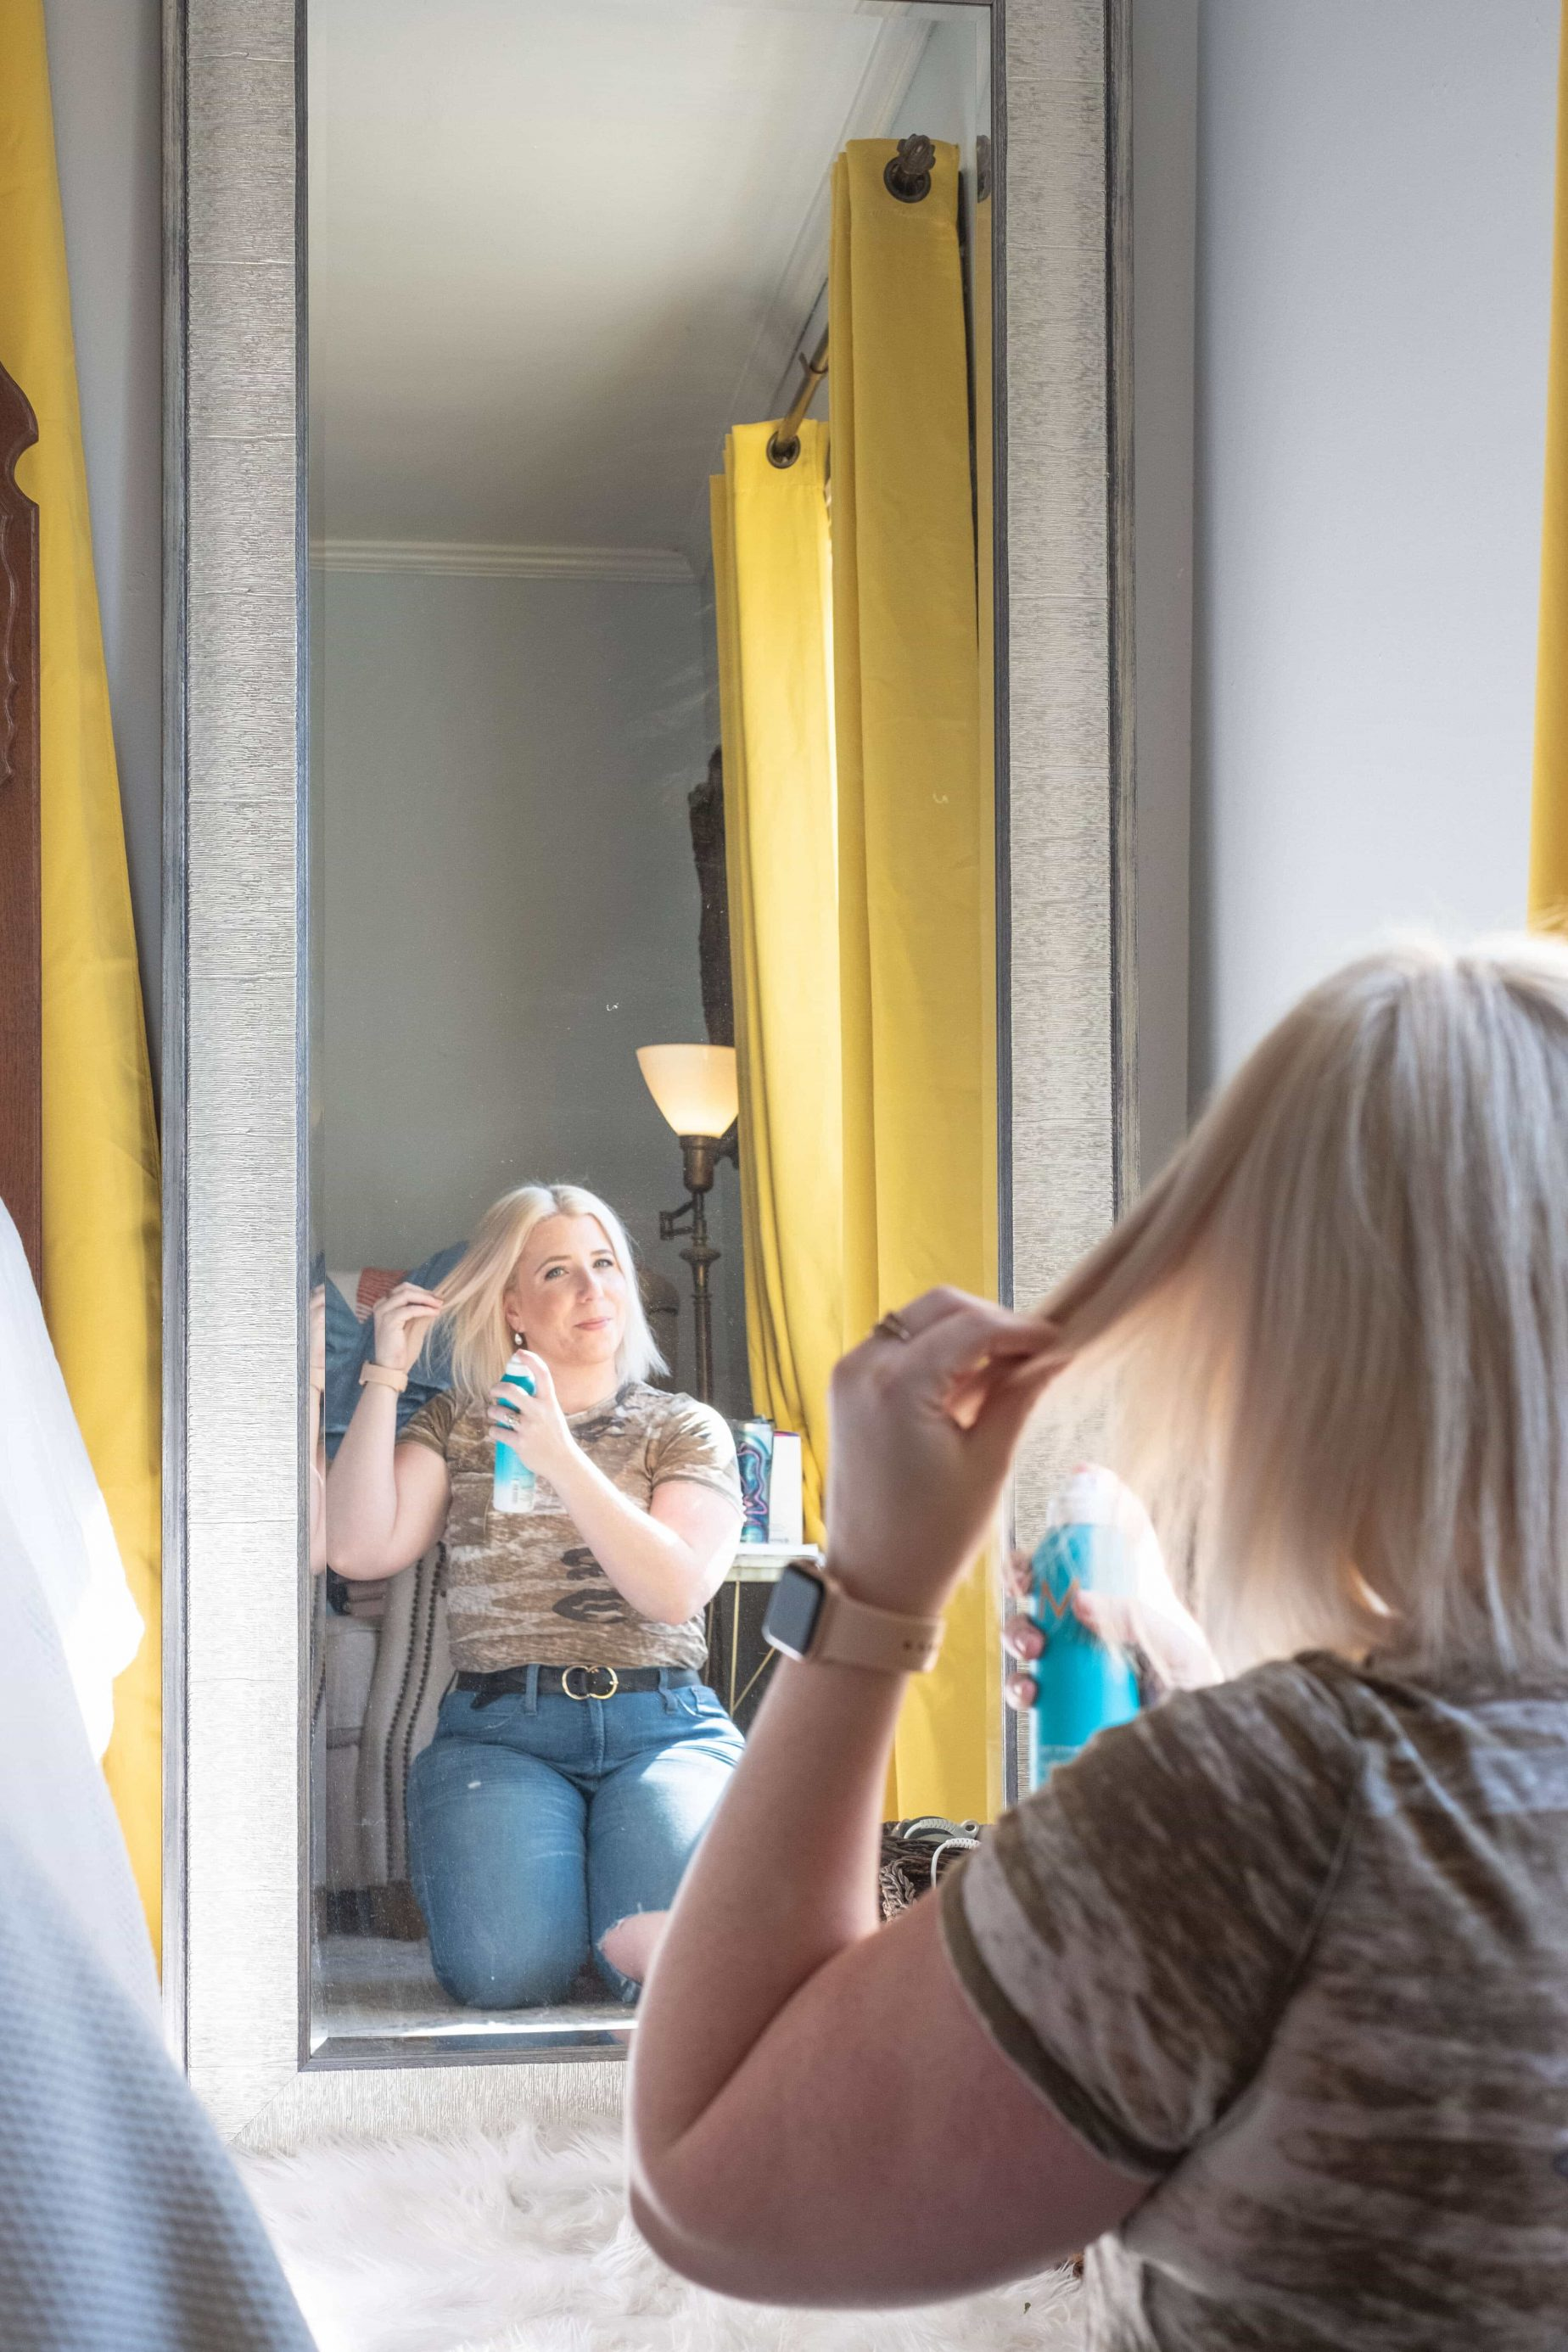 Best Dry Shampoo For Blonde Hair #whatsavvysaid #beautyblogger #dryshampoo #dryshampooforblondehair #blondehair #moroccanoil #whiteblondedryshampoo